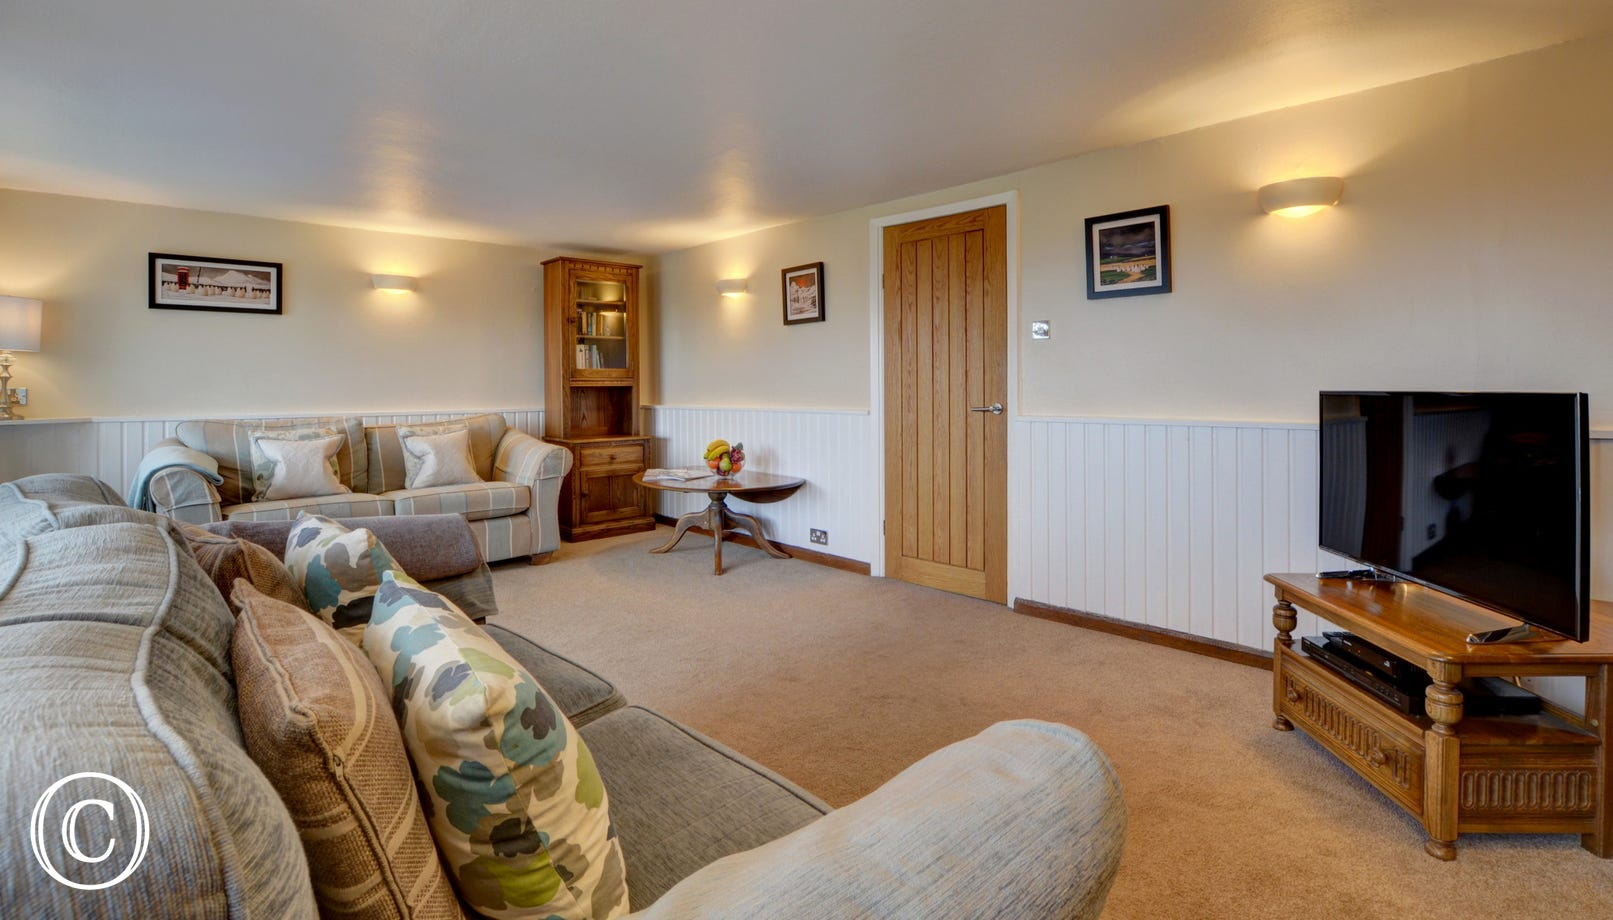 The good sized and very comfortable lounge has two large sofas and there is a woodburning stove for those cooler seasons